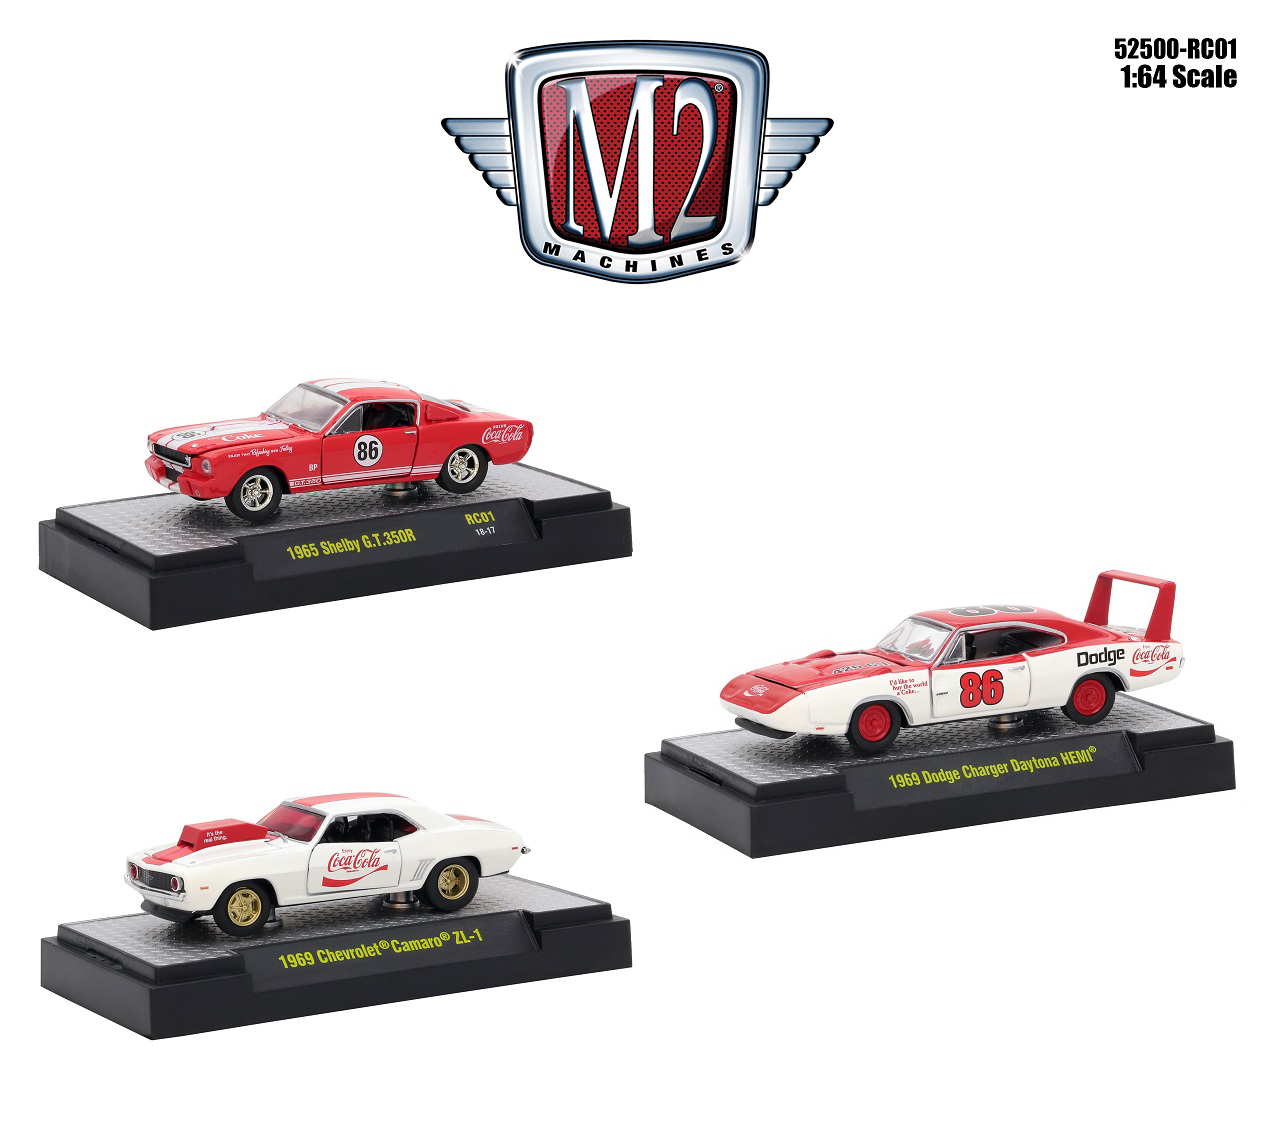 CocaCola_Set_of_3_Cars_Limited_Edition_to_4800_pieces_Worldwide_Hobby_Exclusive_164_Diecast_Models_by_M2_Machines